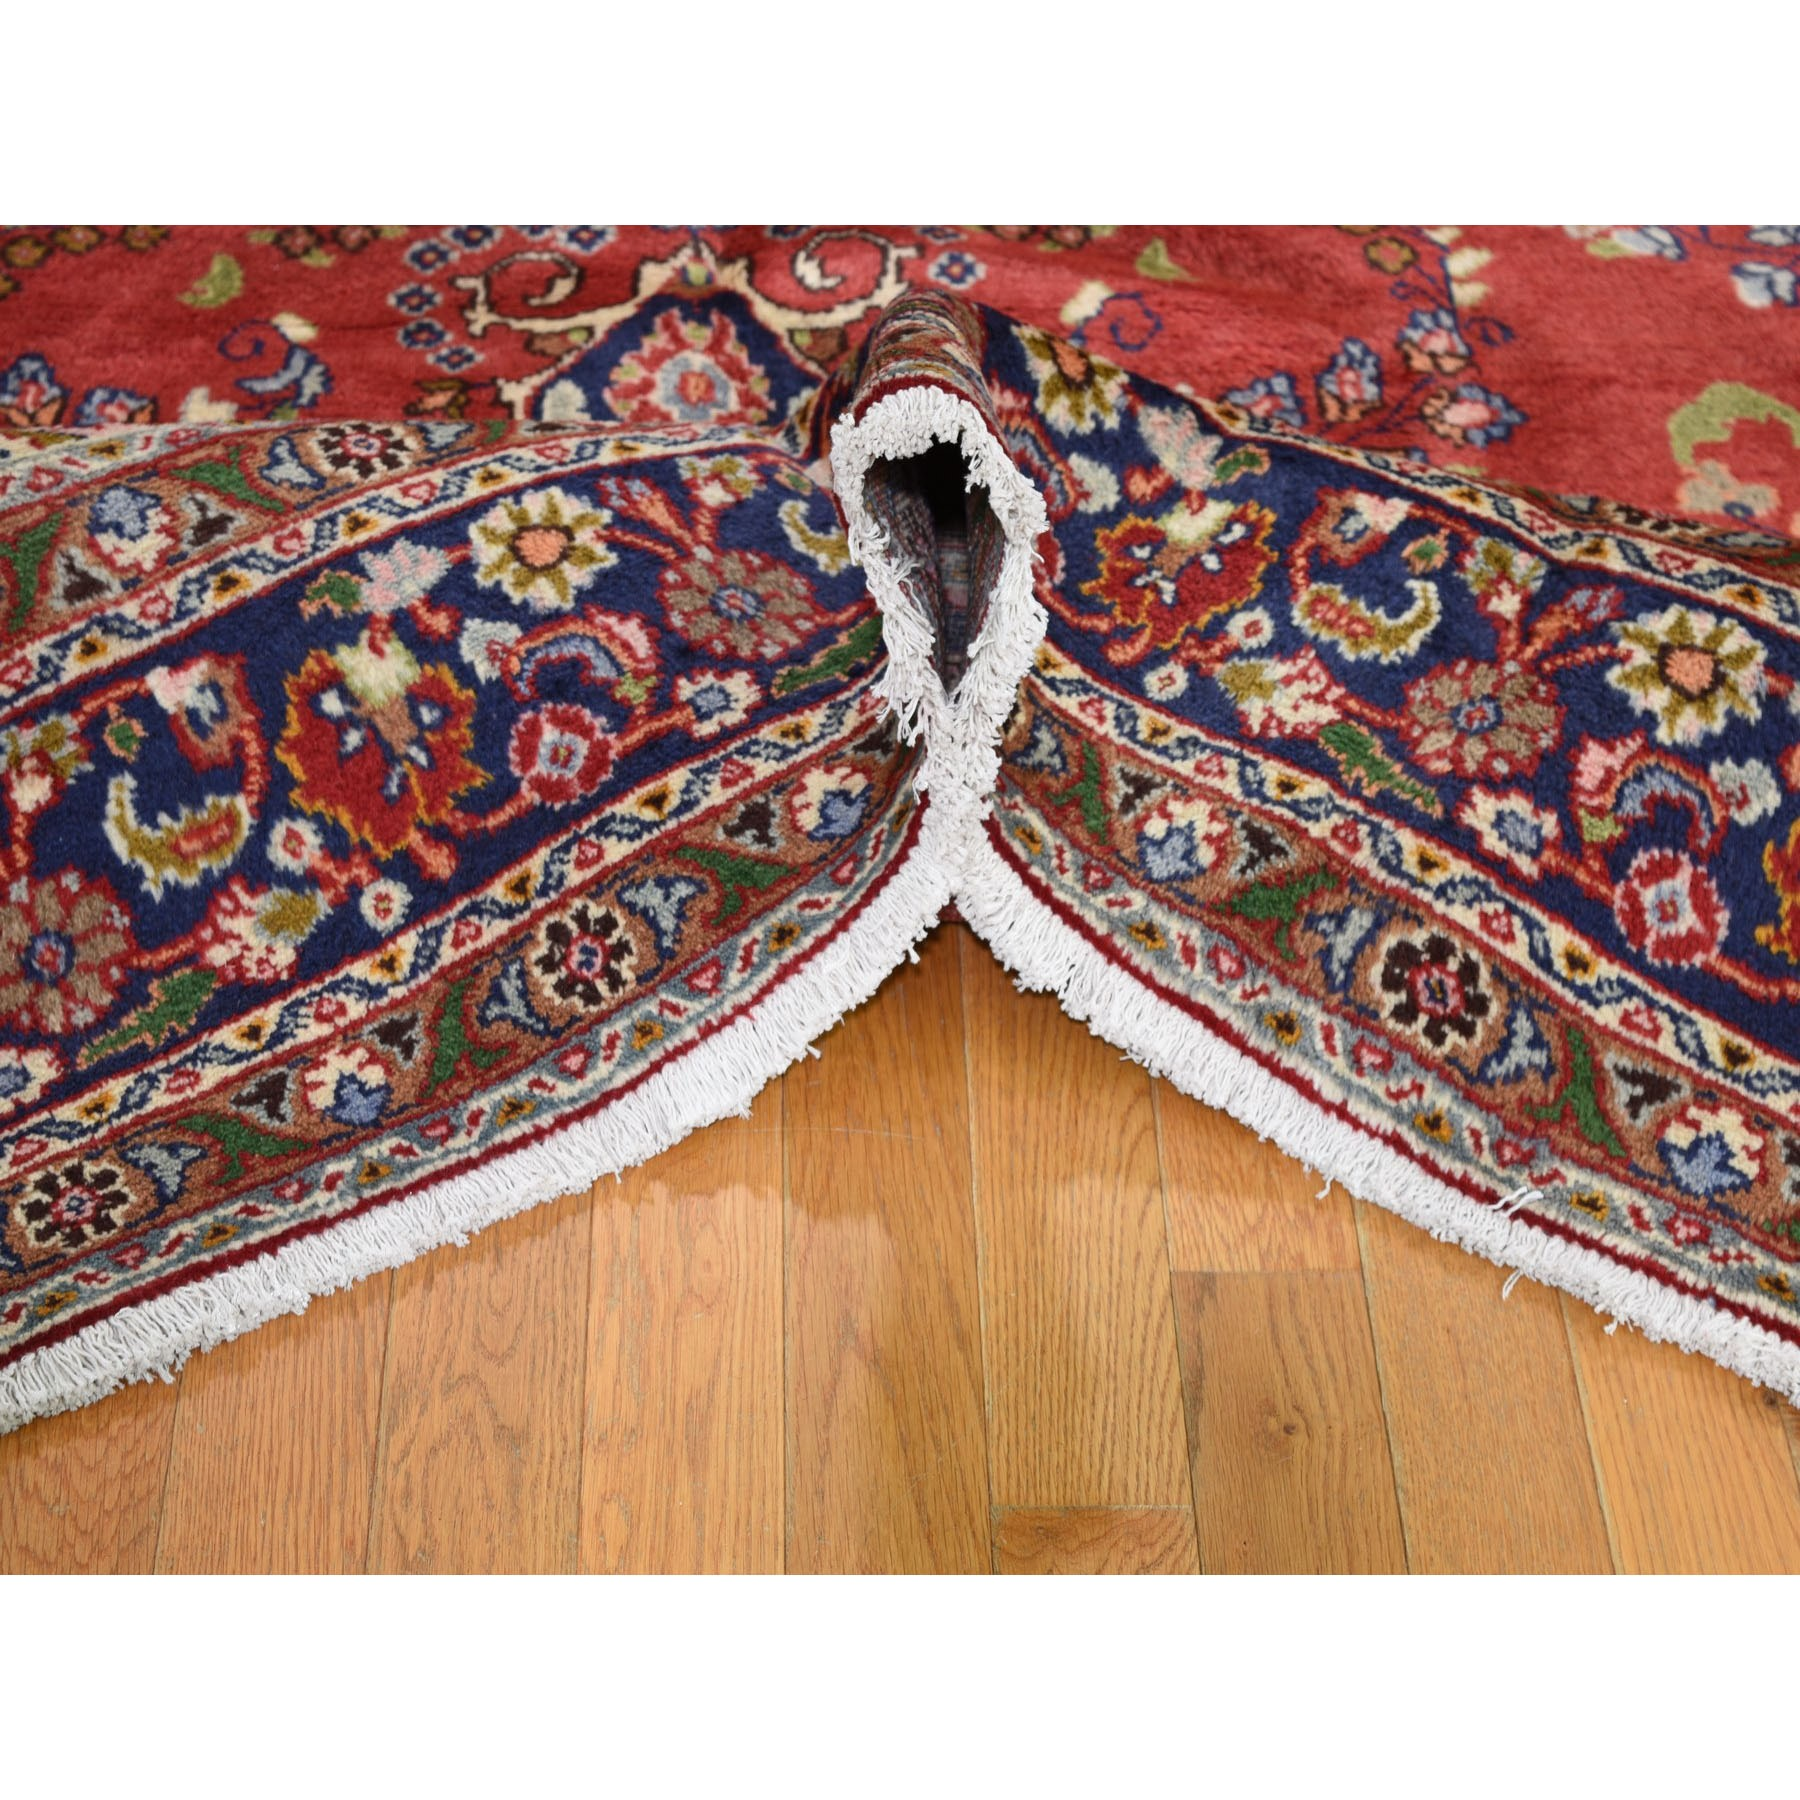 8'x11' Red New Persian Tabriz Pure Wool Full Pile Hand Knotted Oriental Rug